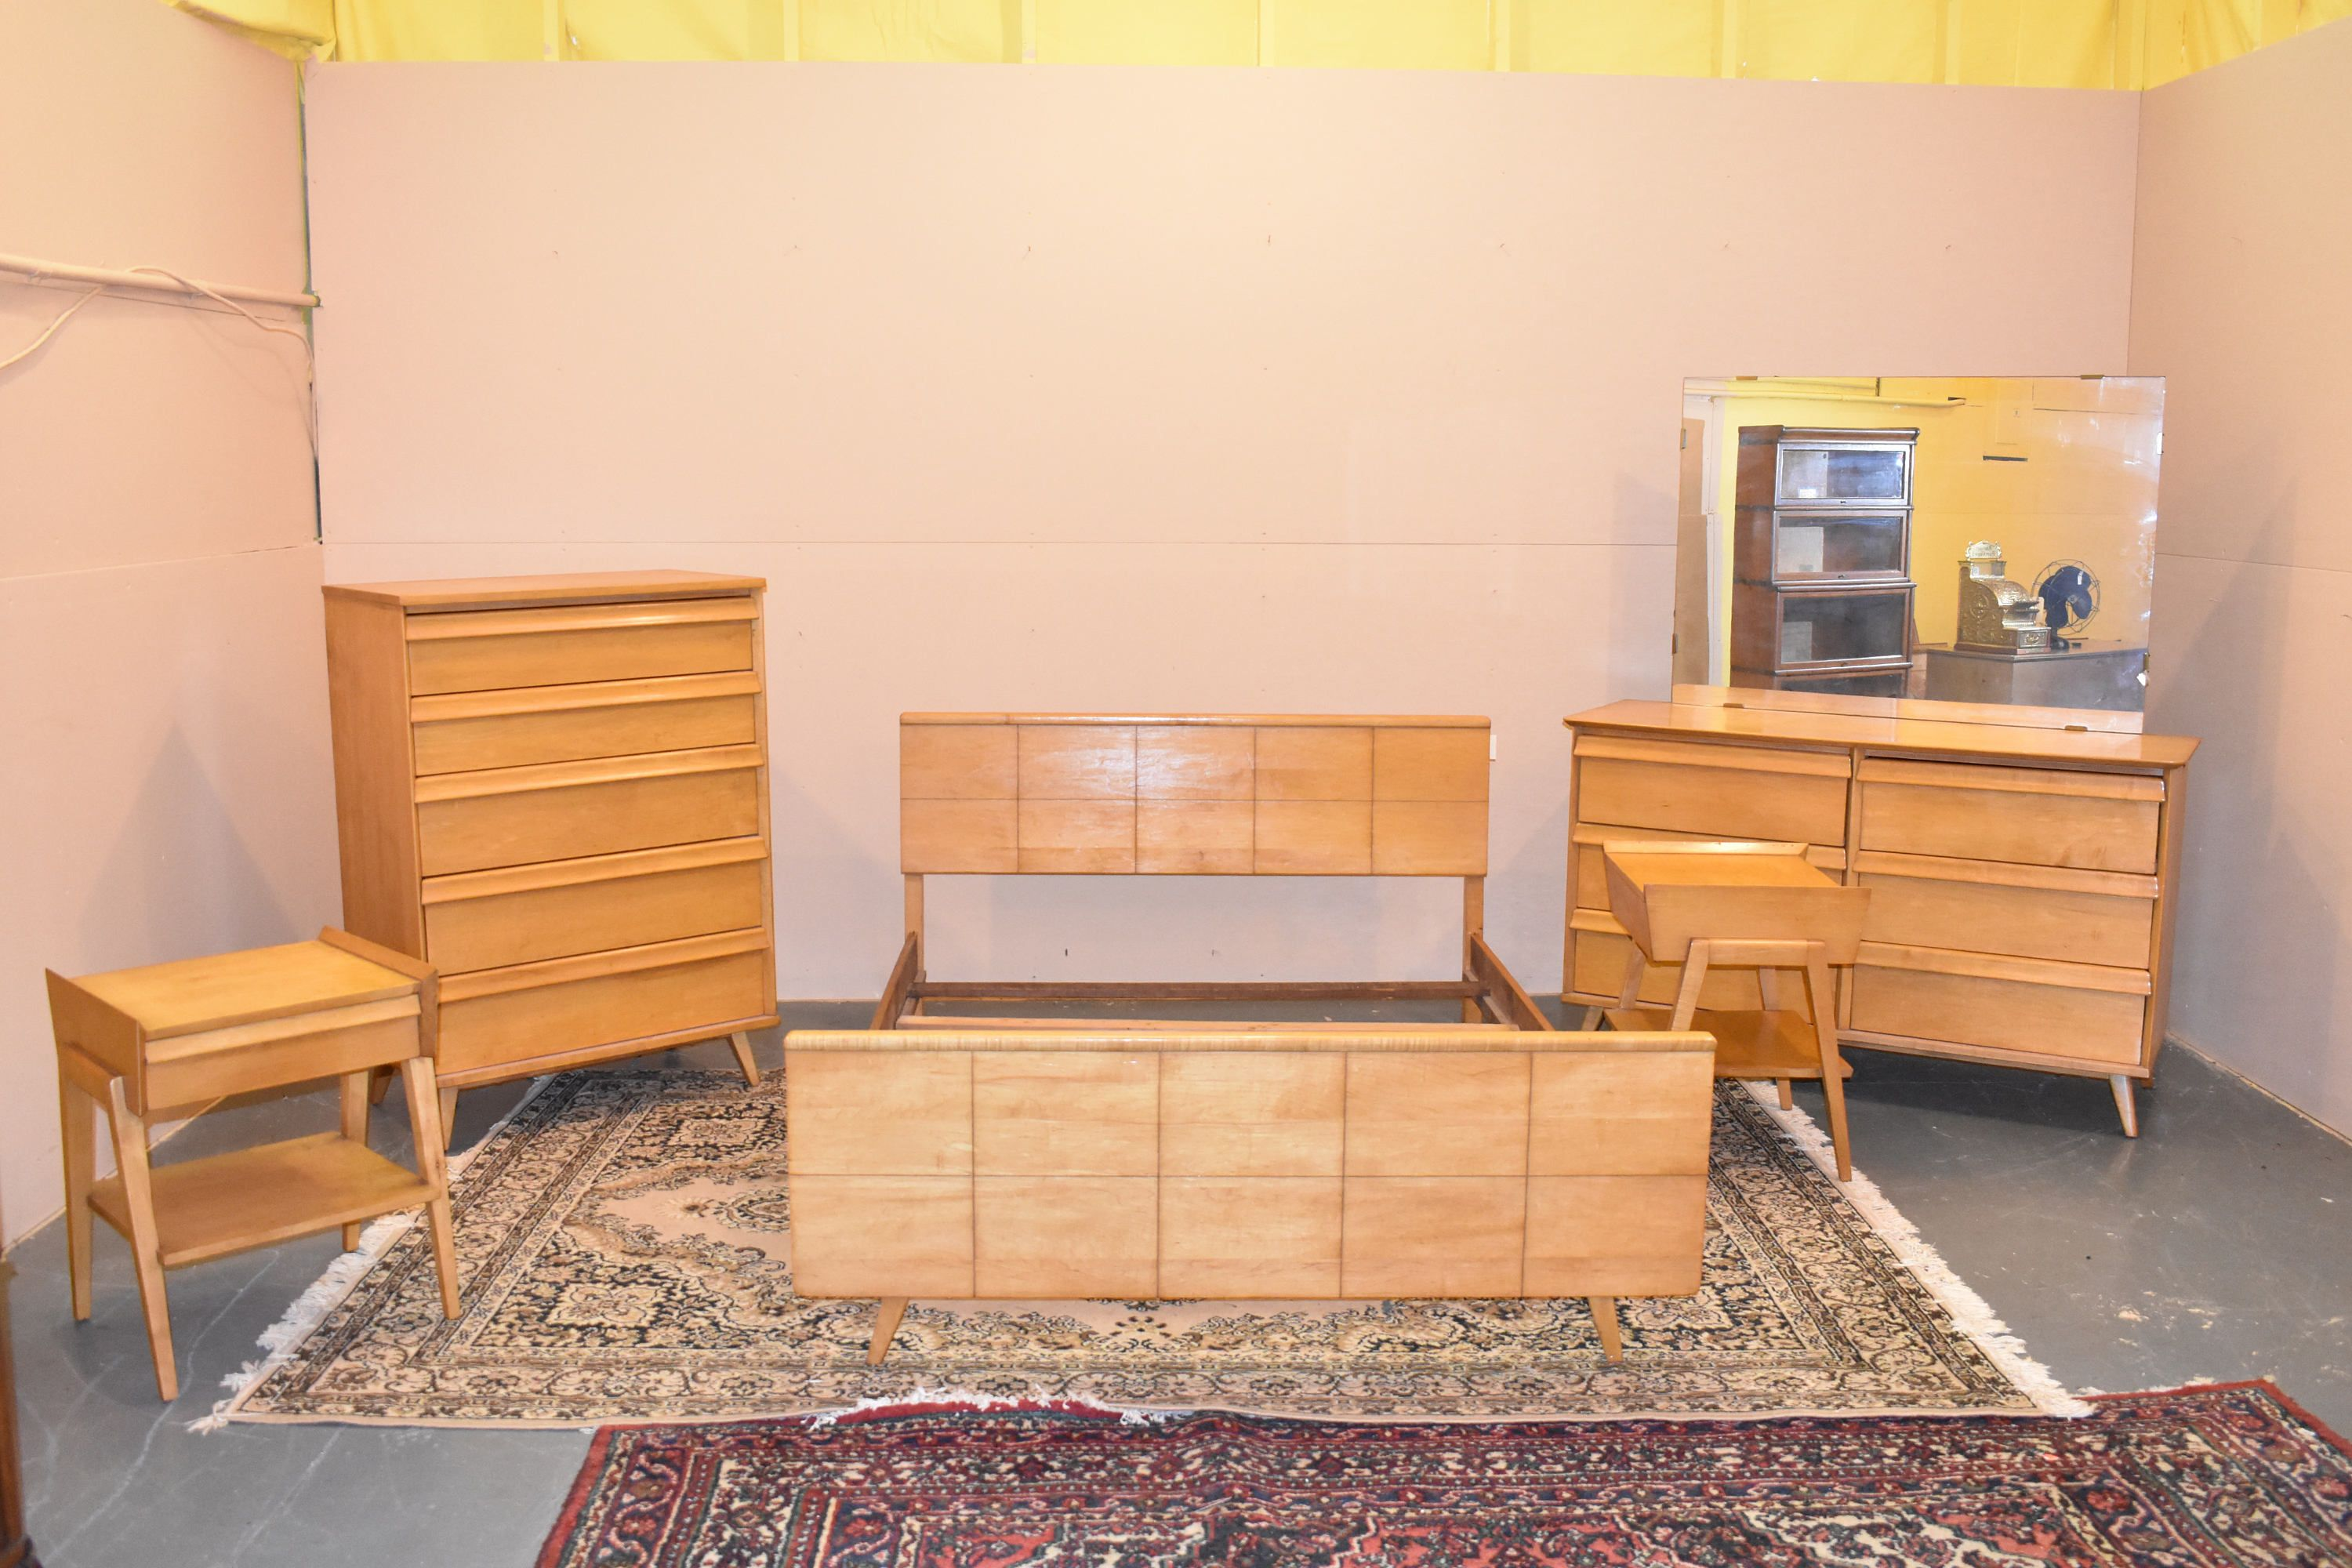 Mid Century Modern Vintage Bedroom Set By Baumritter 1950 S By Thegreensceneantiqu Modern Vintage Bedrooms Mid Century Modern Bedroom Sets Vintage Bedroom Sets